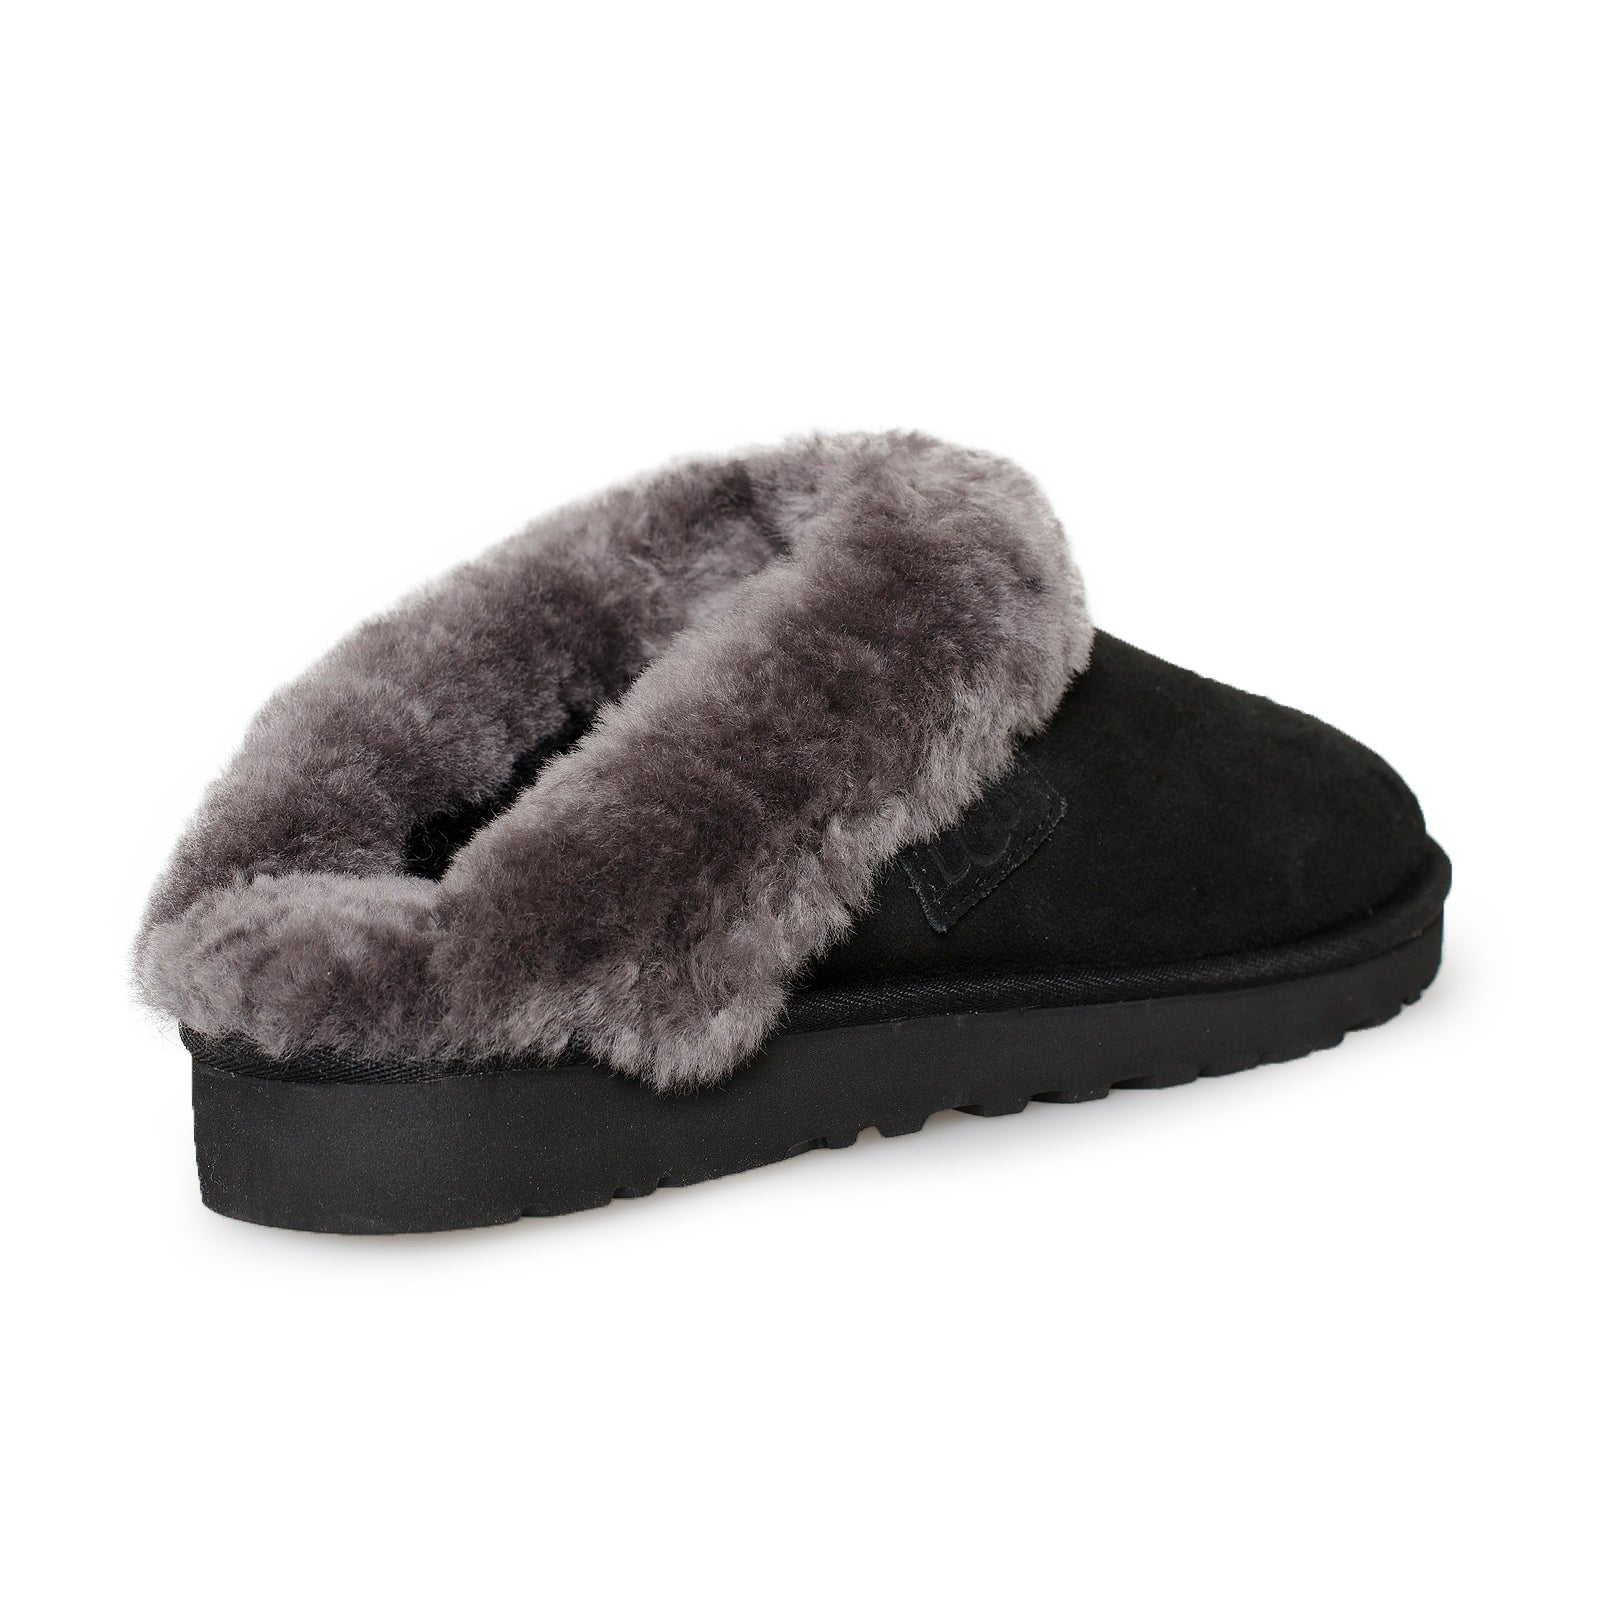 9646aa6f547 UGG Cluggette Black Slippers - Women's